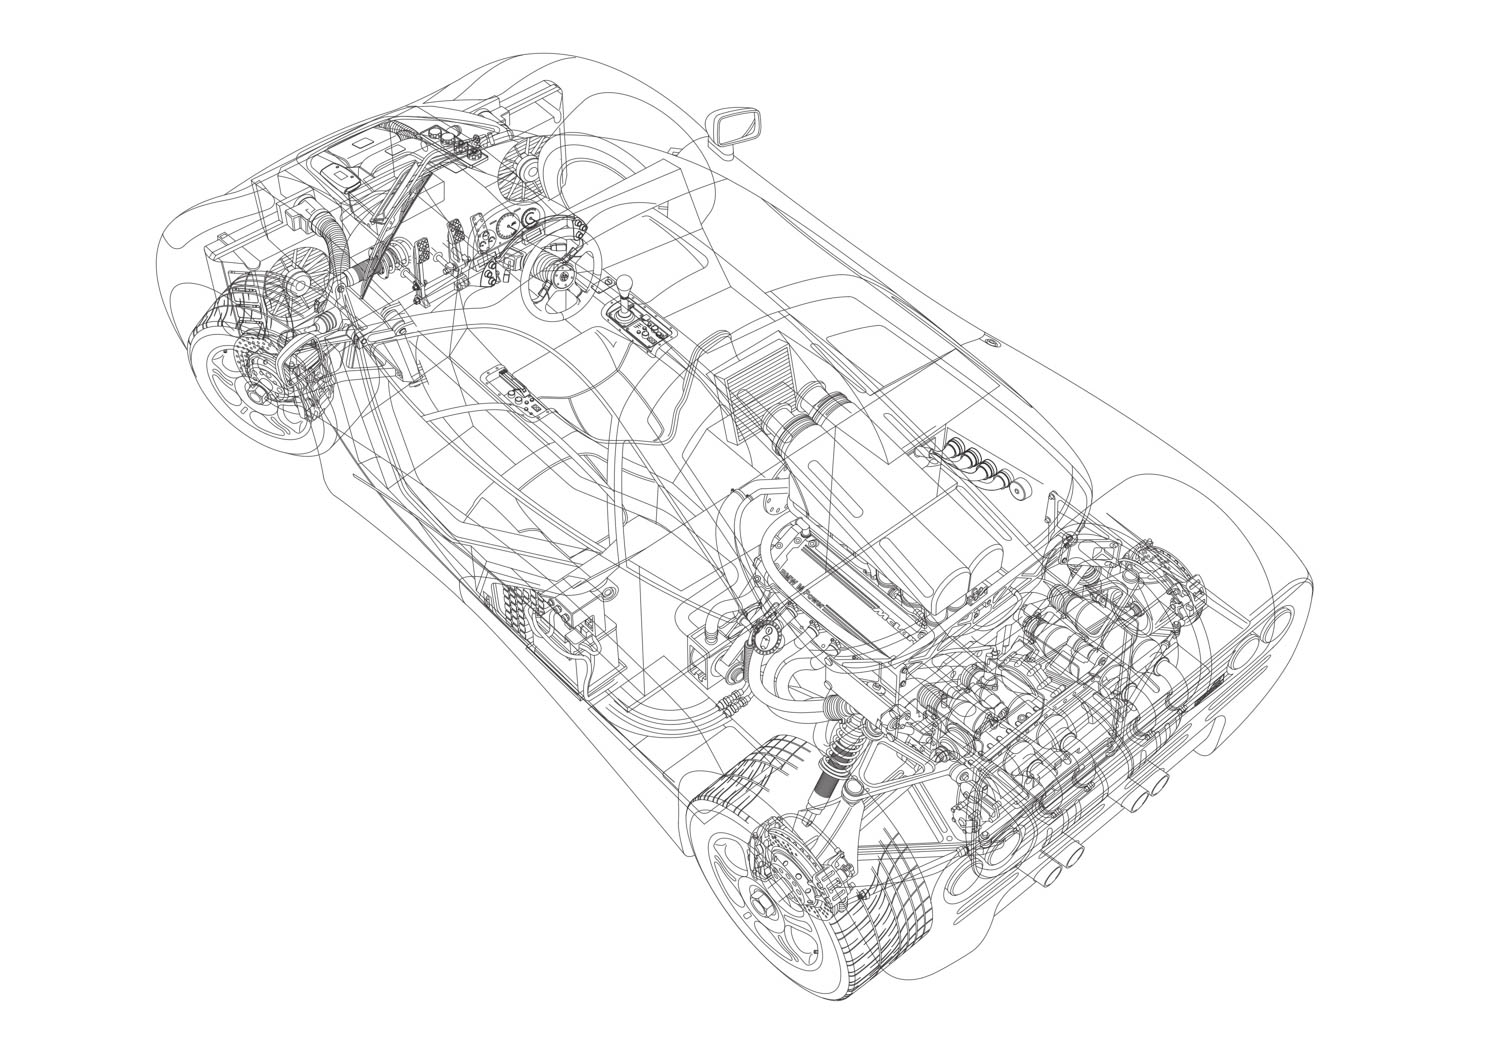 McLaren F1 overhead drawing